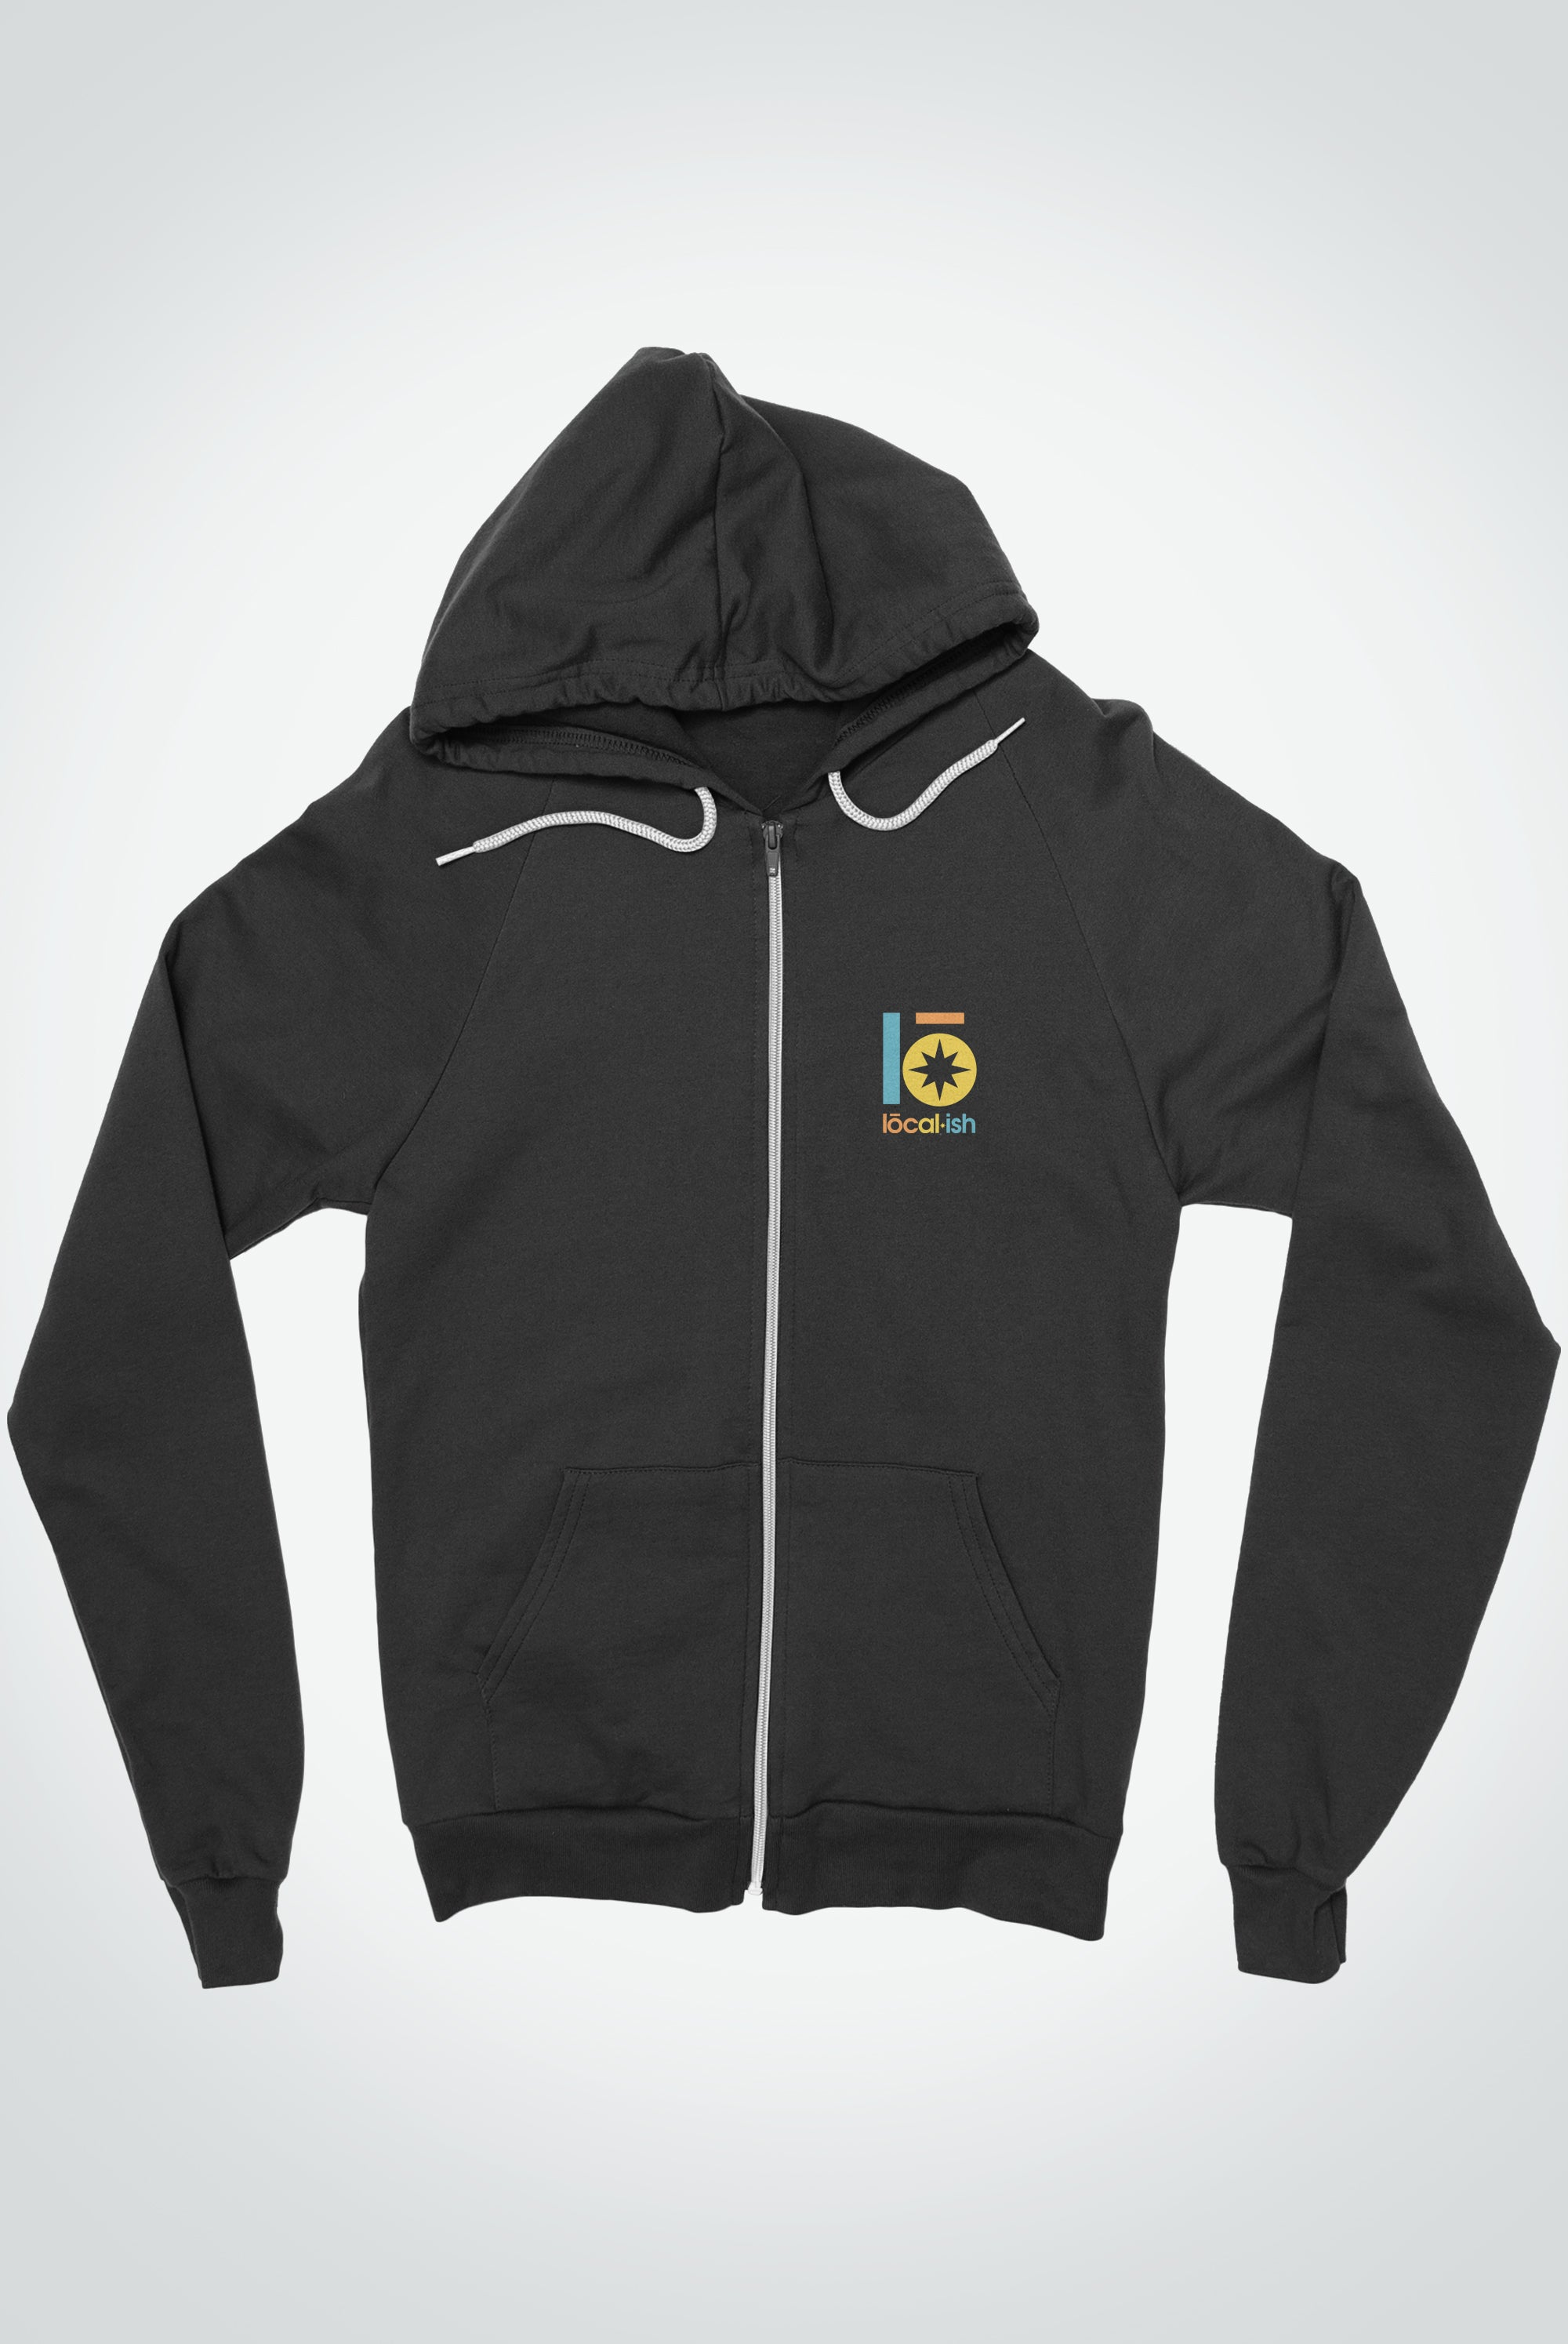 the traveler hoodie - black